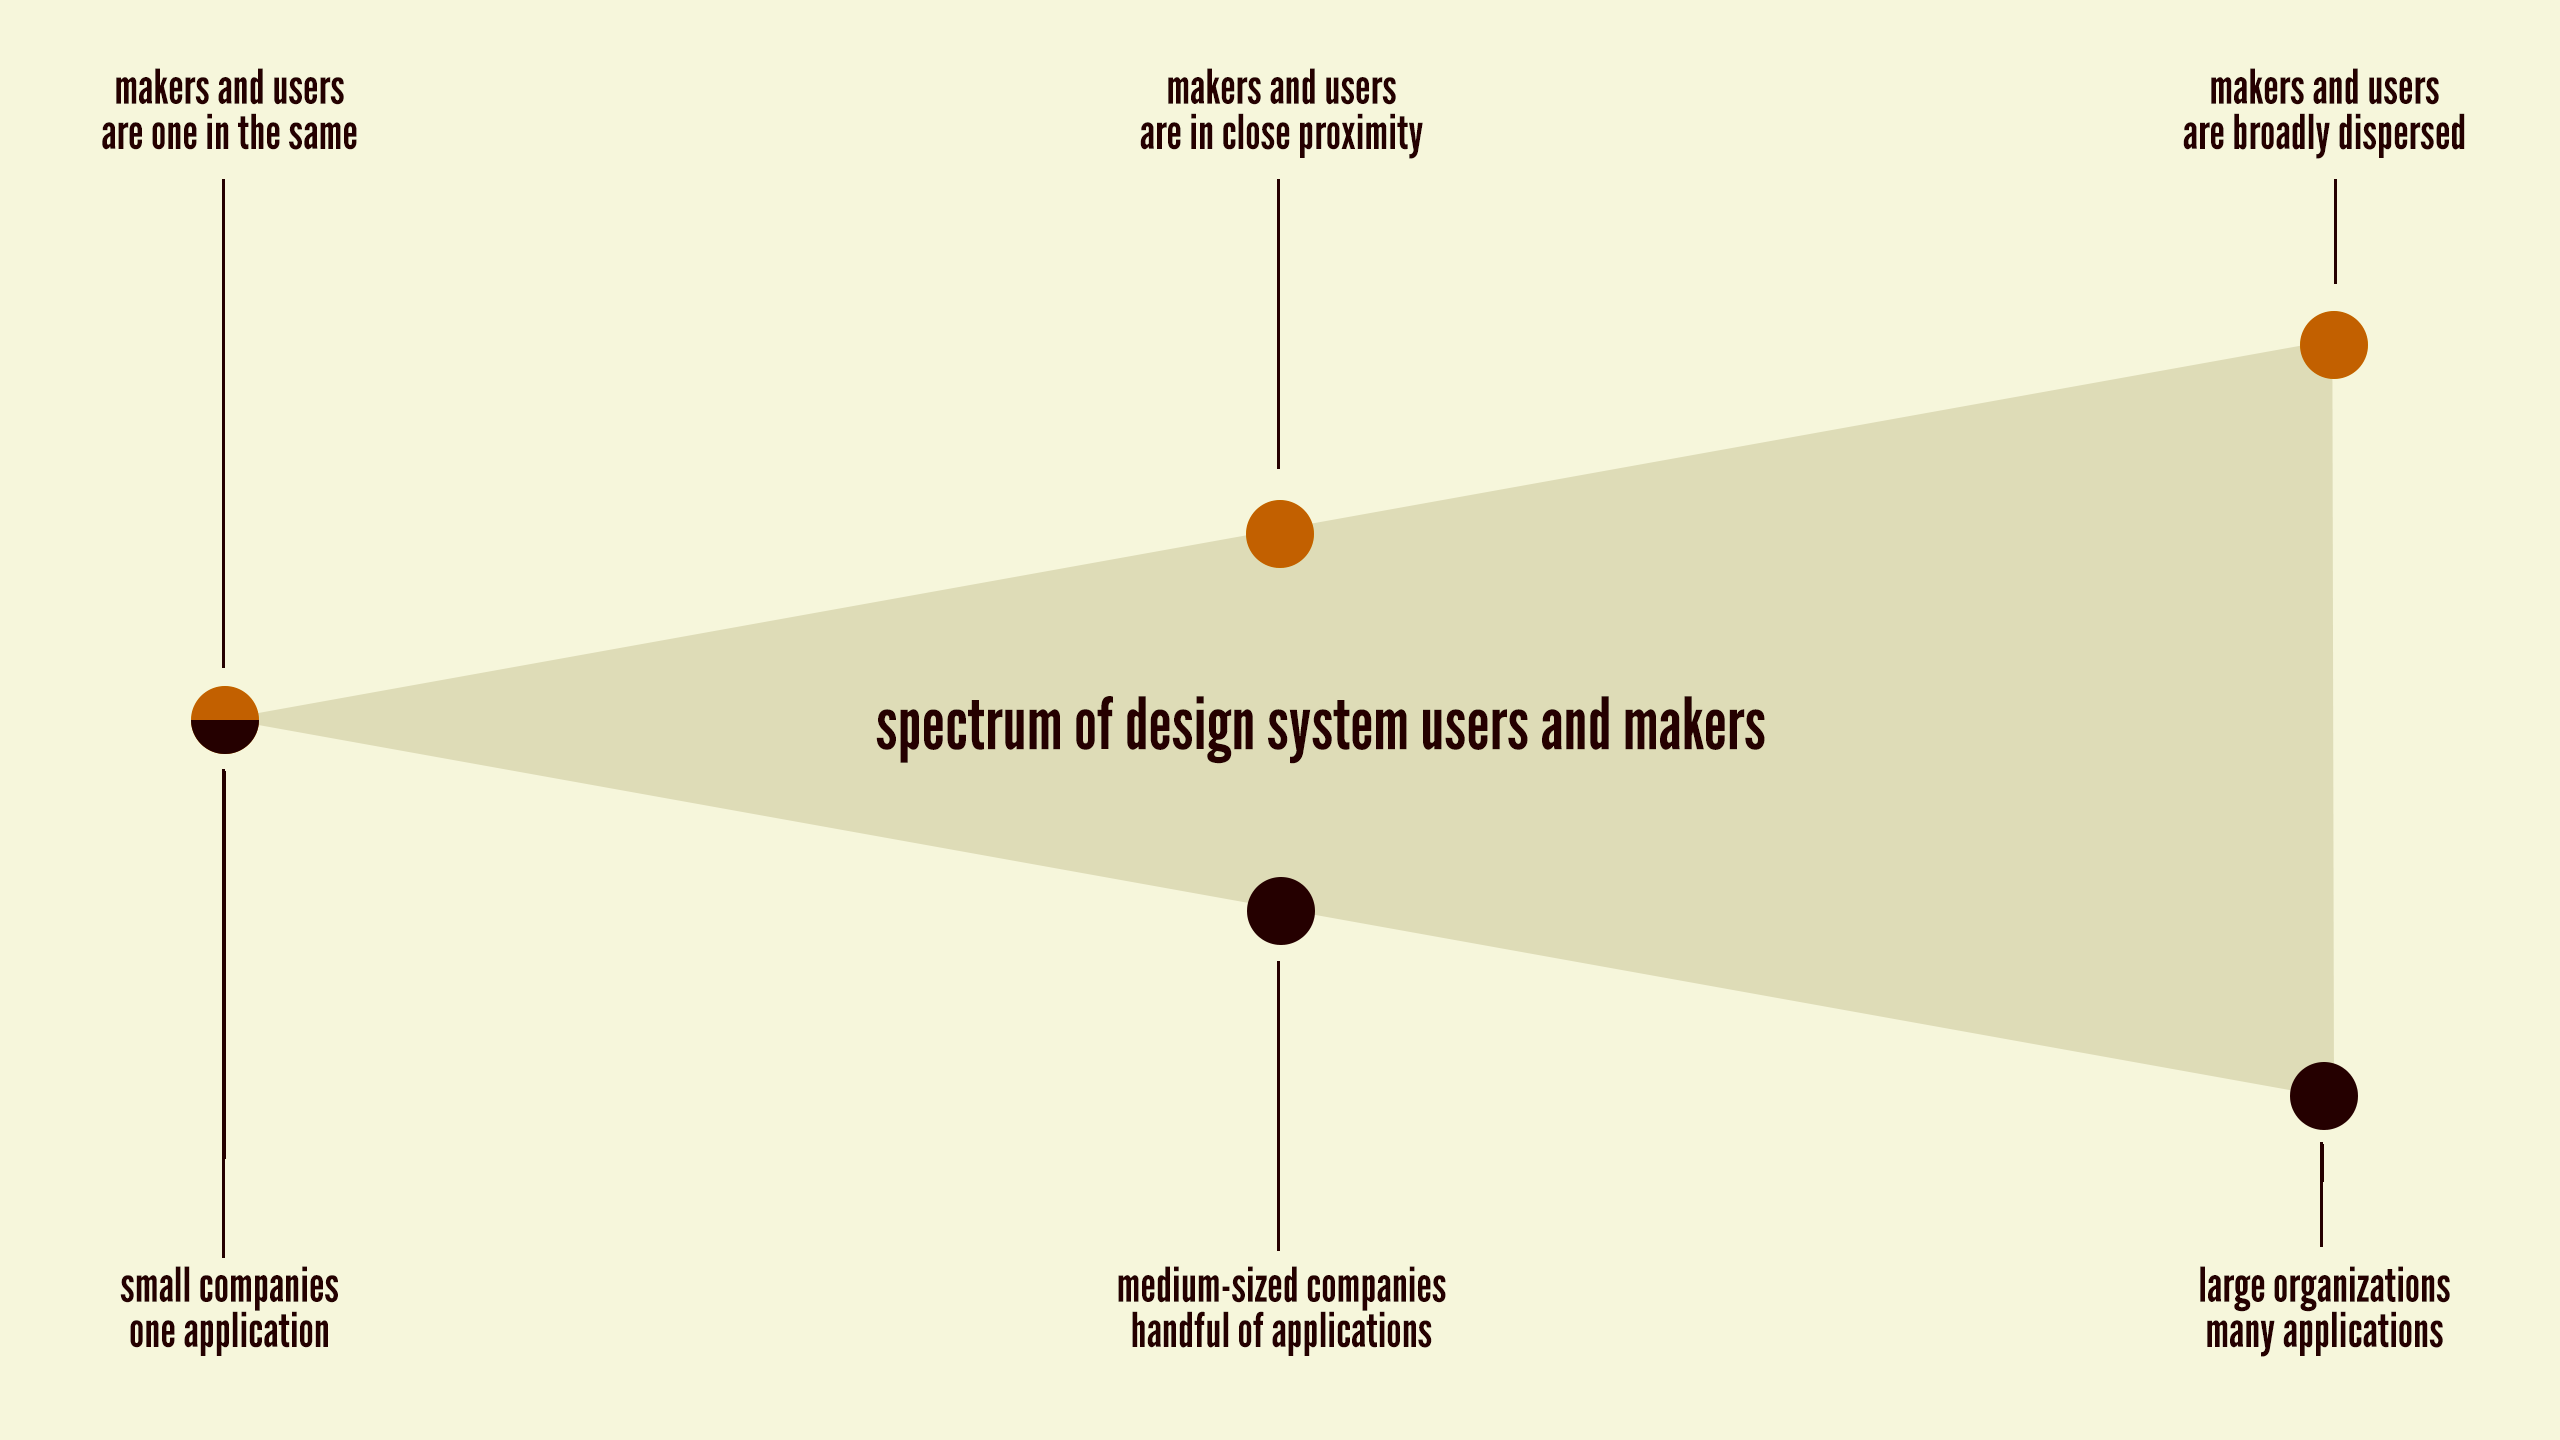 There is a spectrum of potential relationships between design system users and makers, and the size and makeup of your company will undoubtedly shape those relationships.